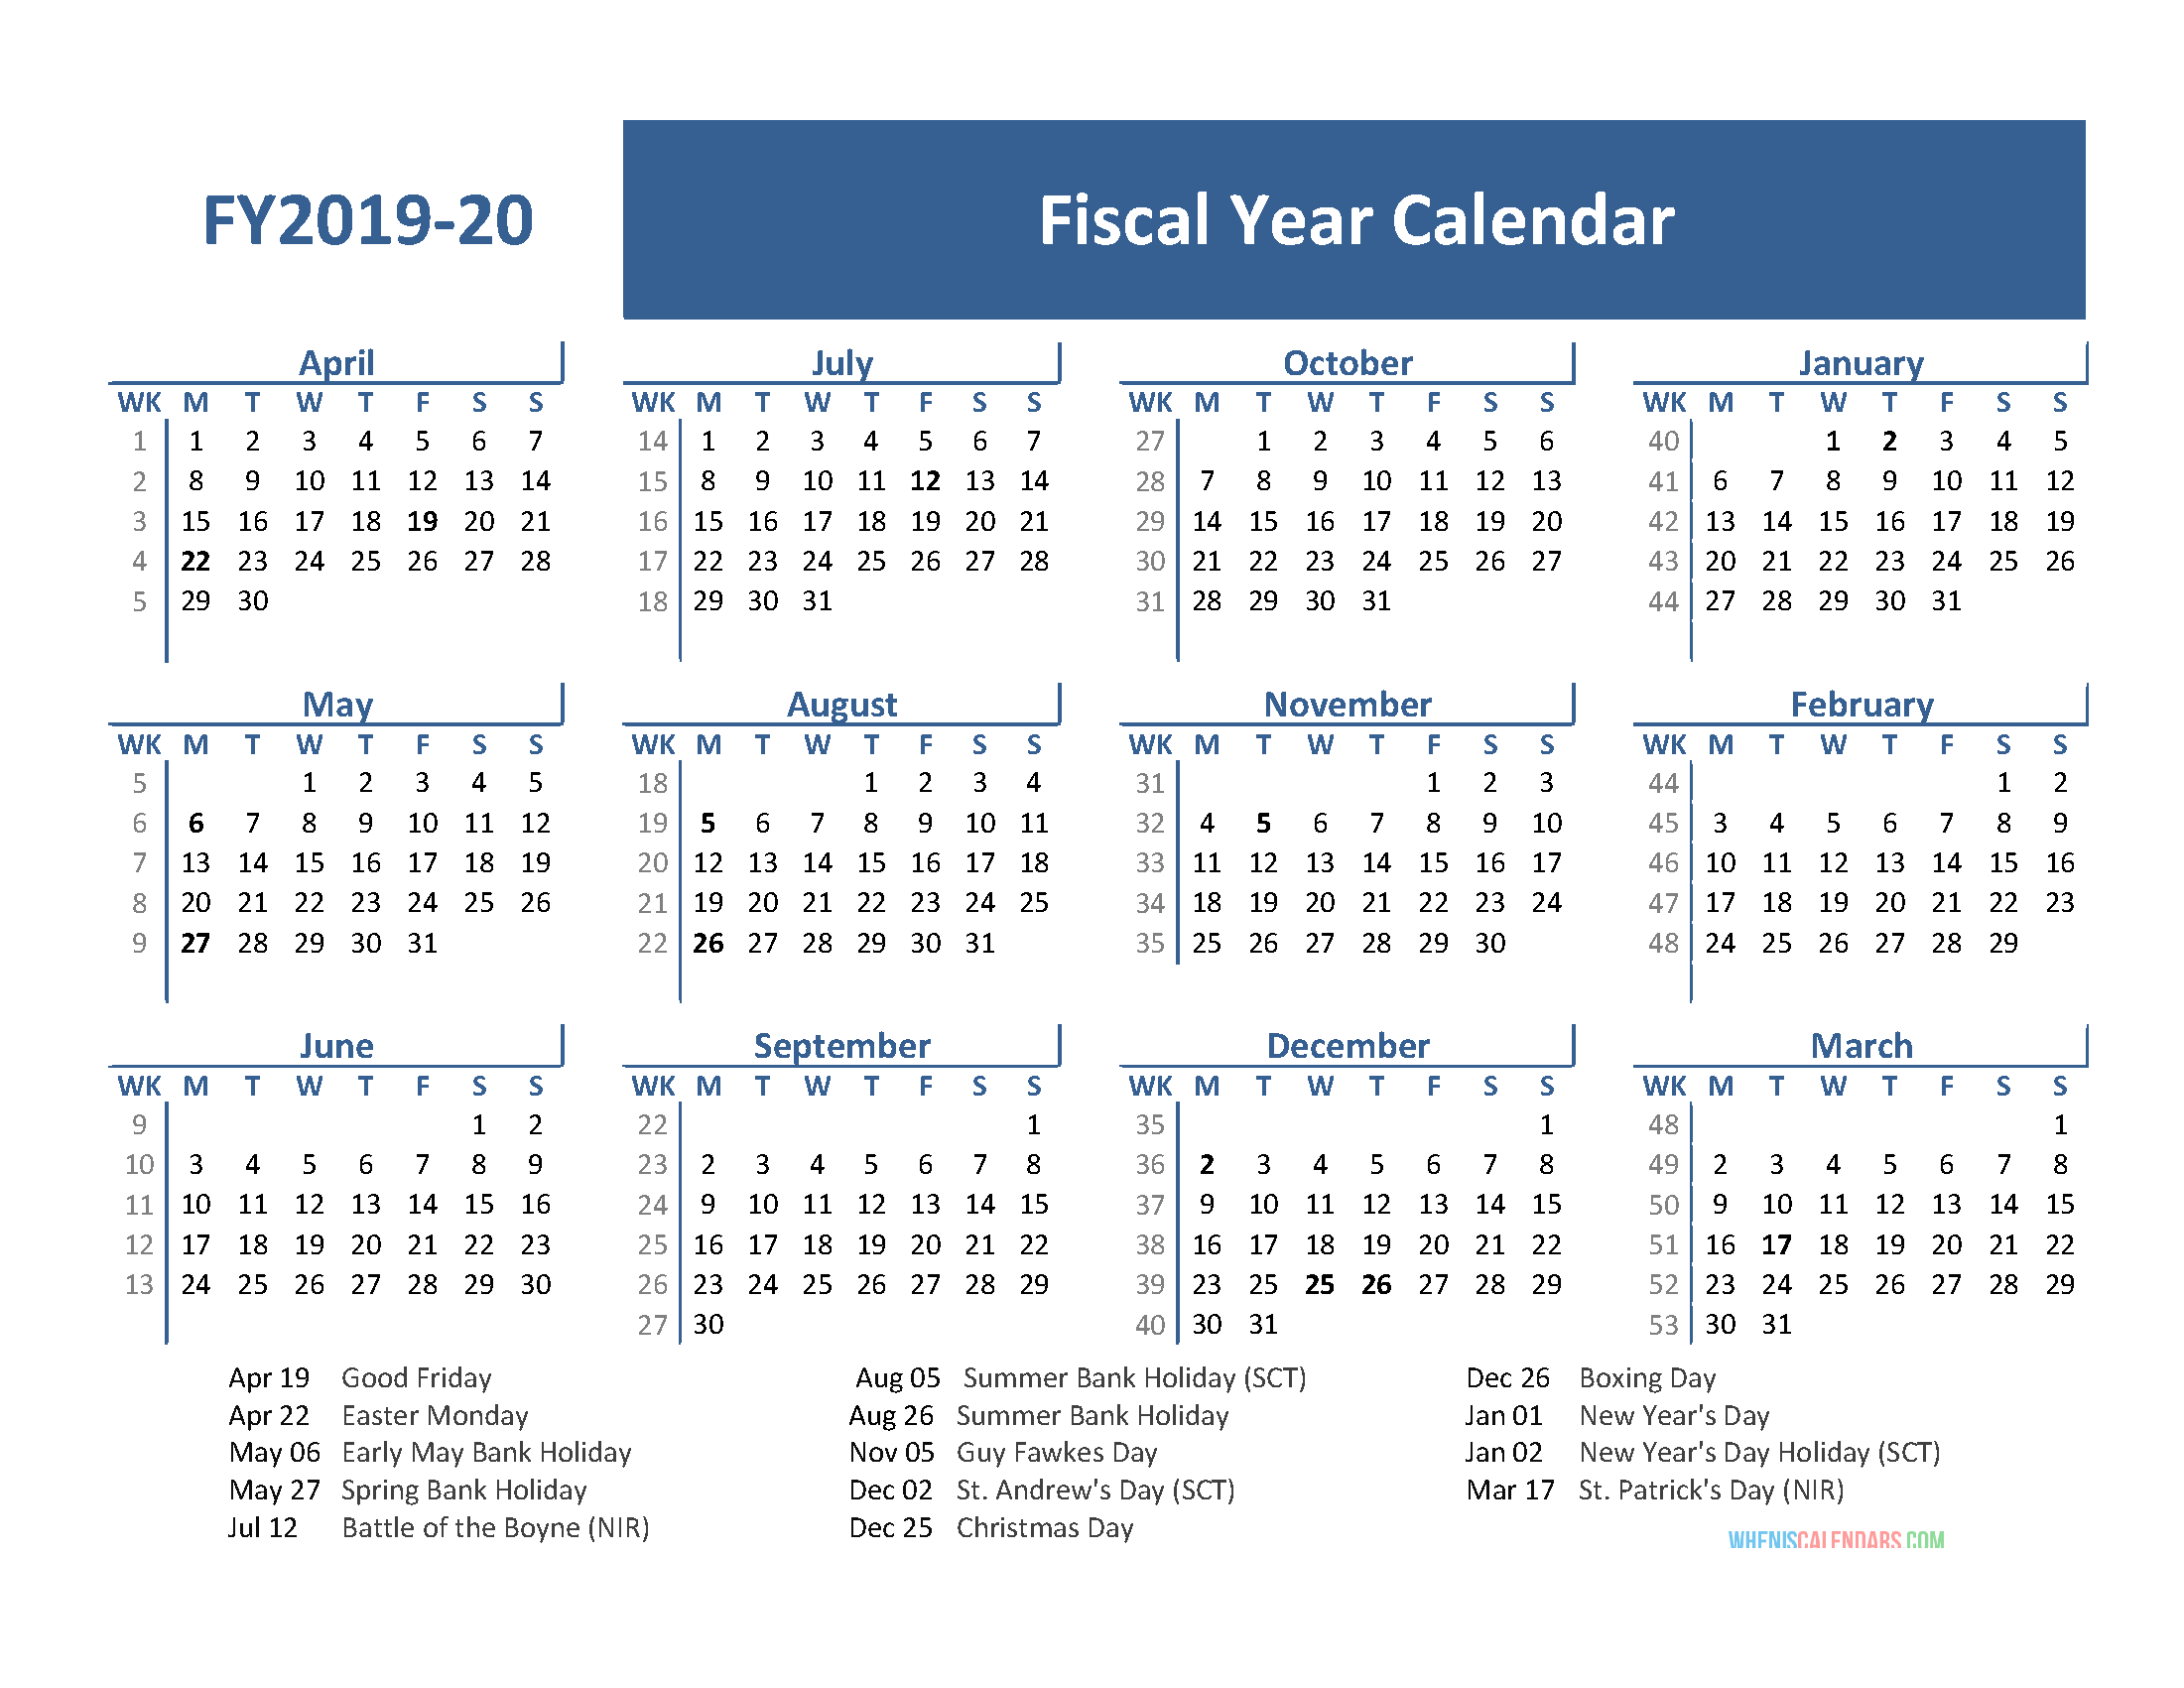 2020 Fiscal Year Calendar Fiscal Year 2019 Calendar with Holidays (April 2019 March 2020